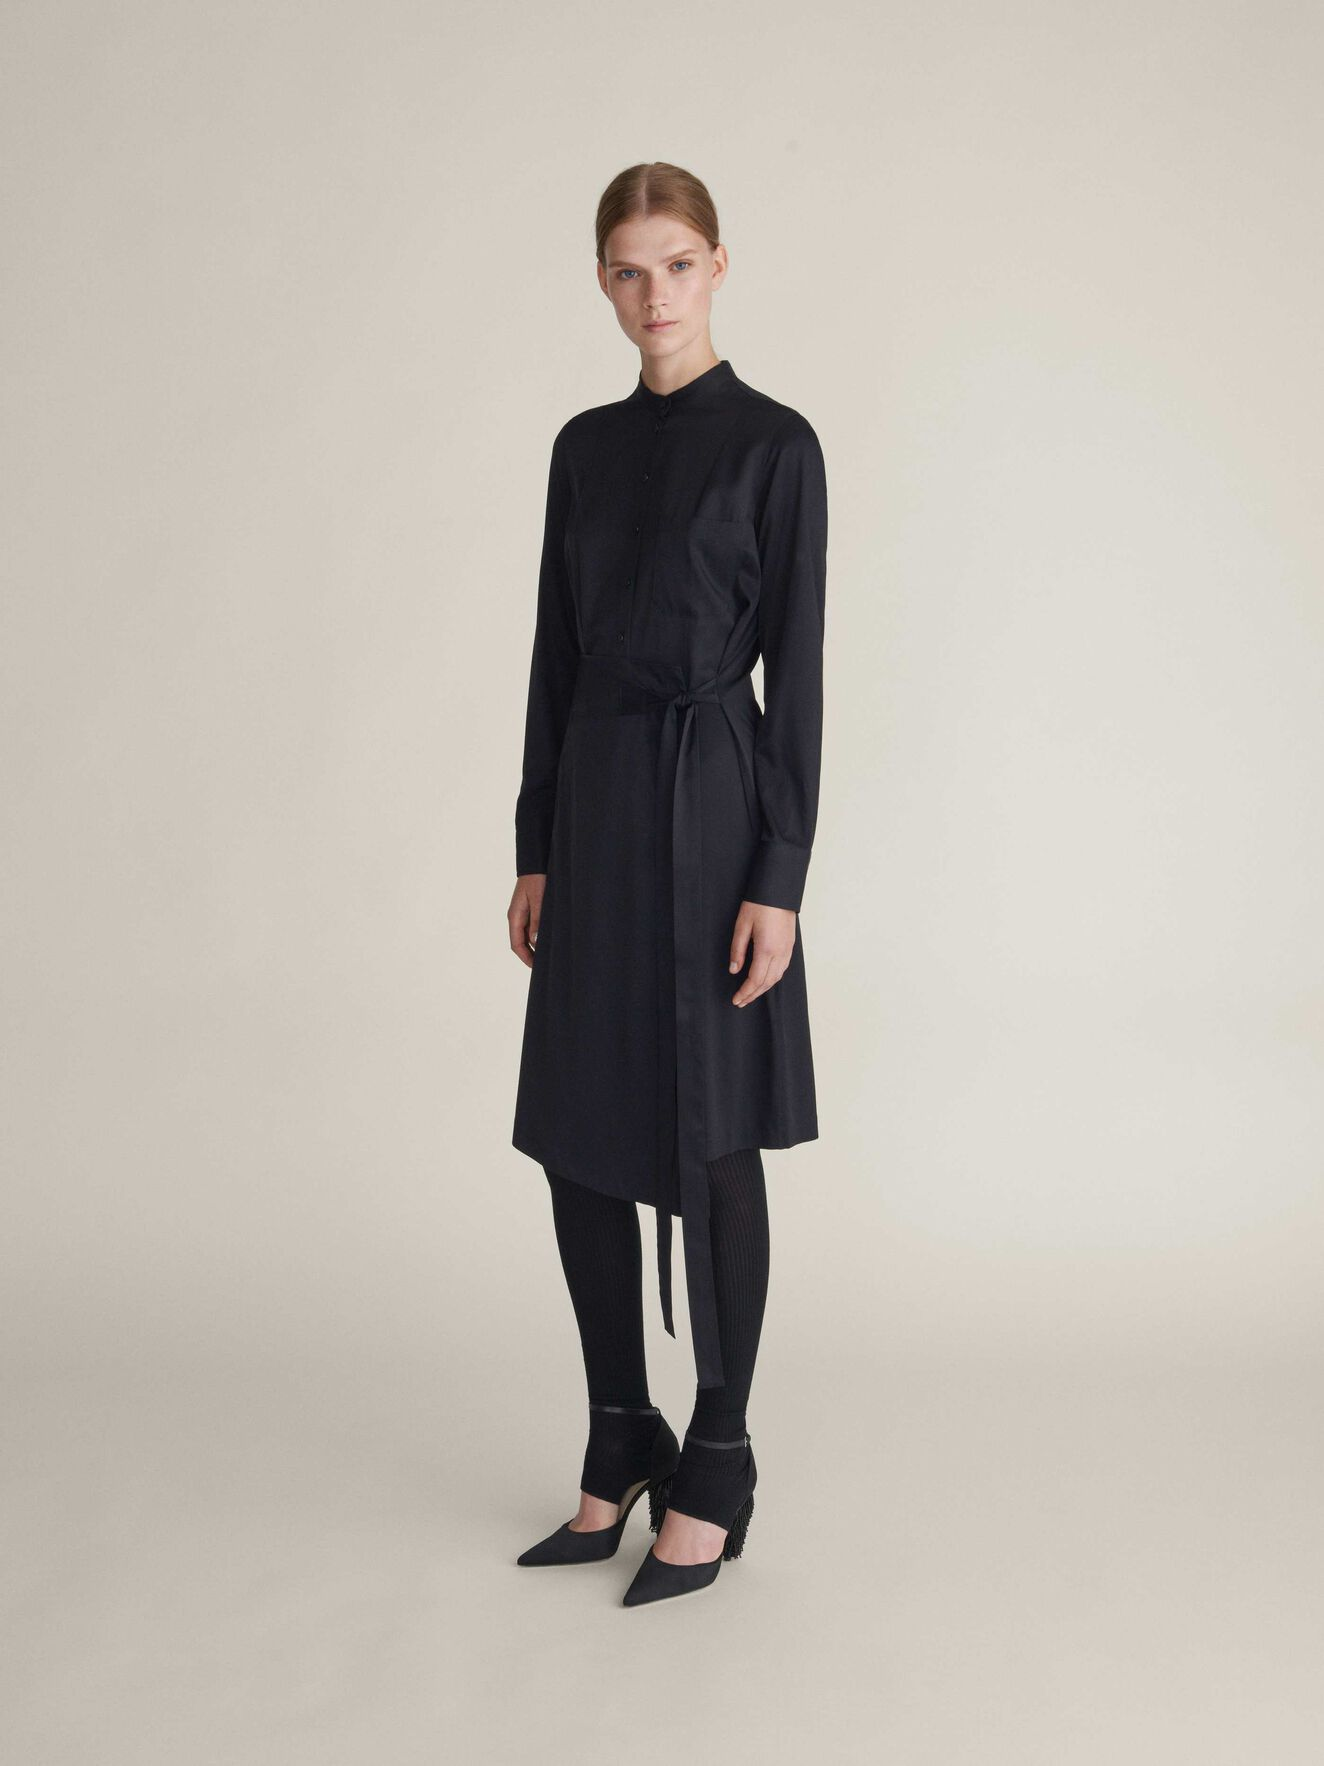 Leonetta Dress in Midnight Black from Tiger of Sweden